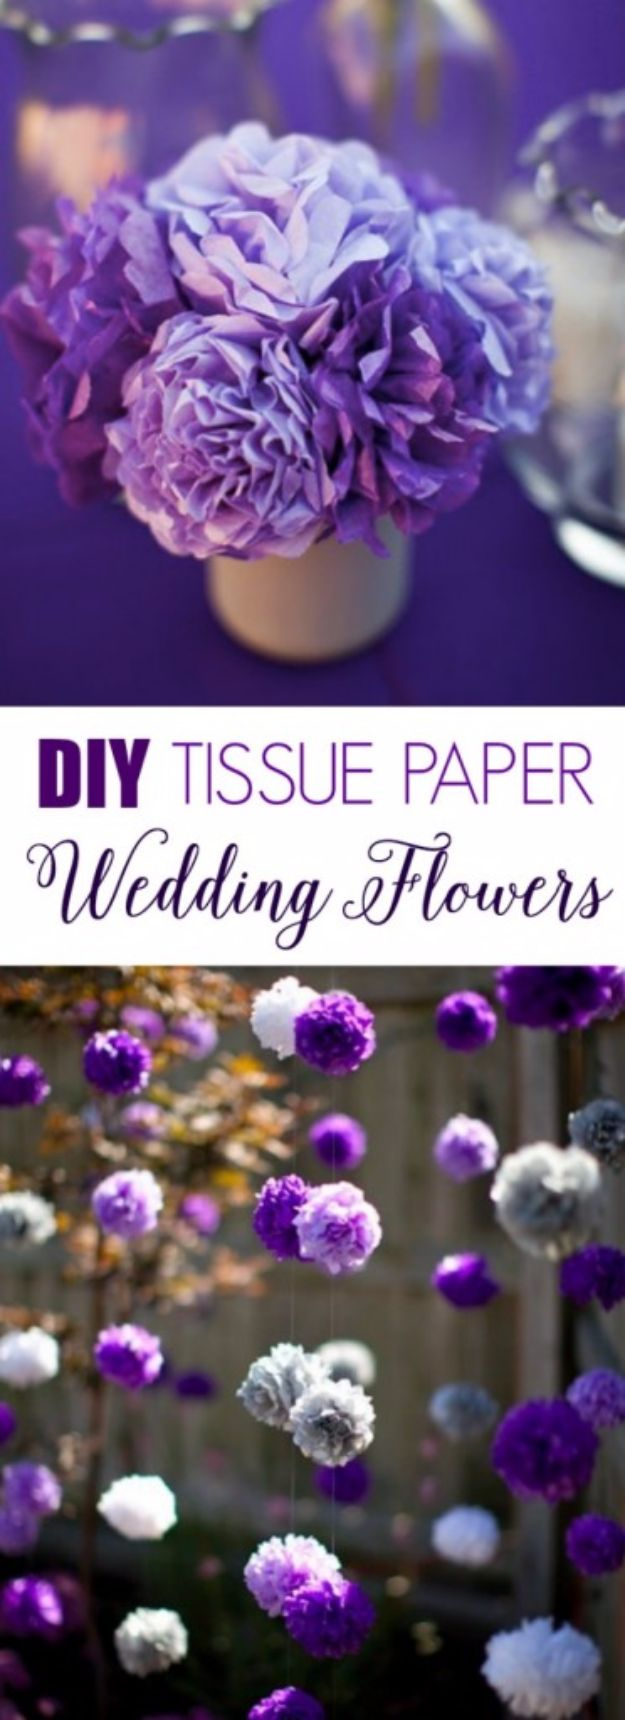 Diy Wedding Decor Ideas 34 Diy Wedding Decor Ideas For The Bride On A Budget